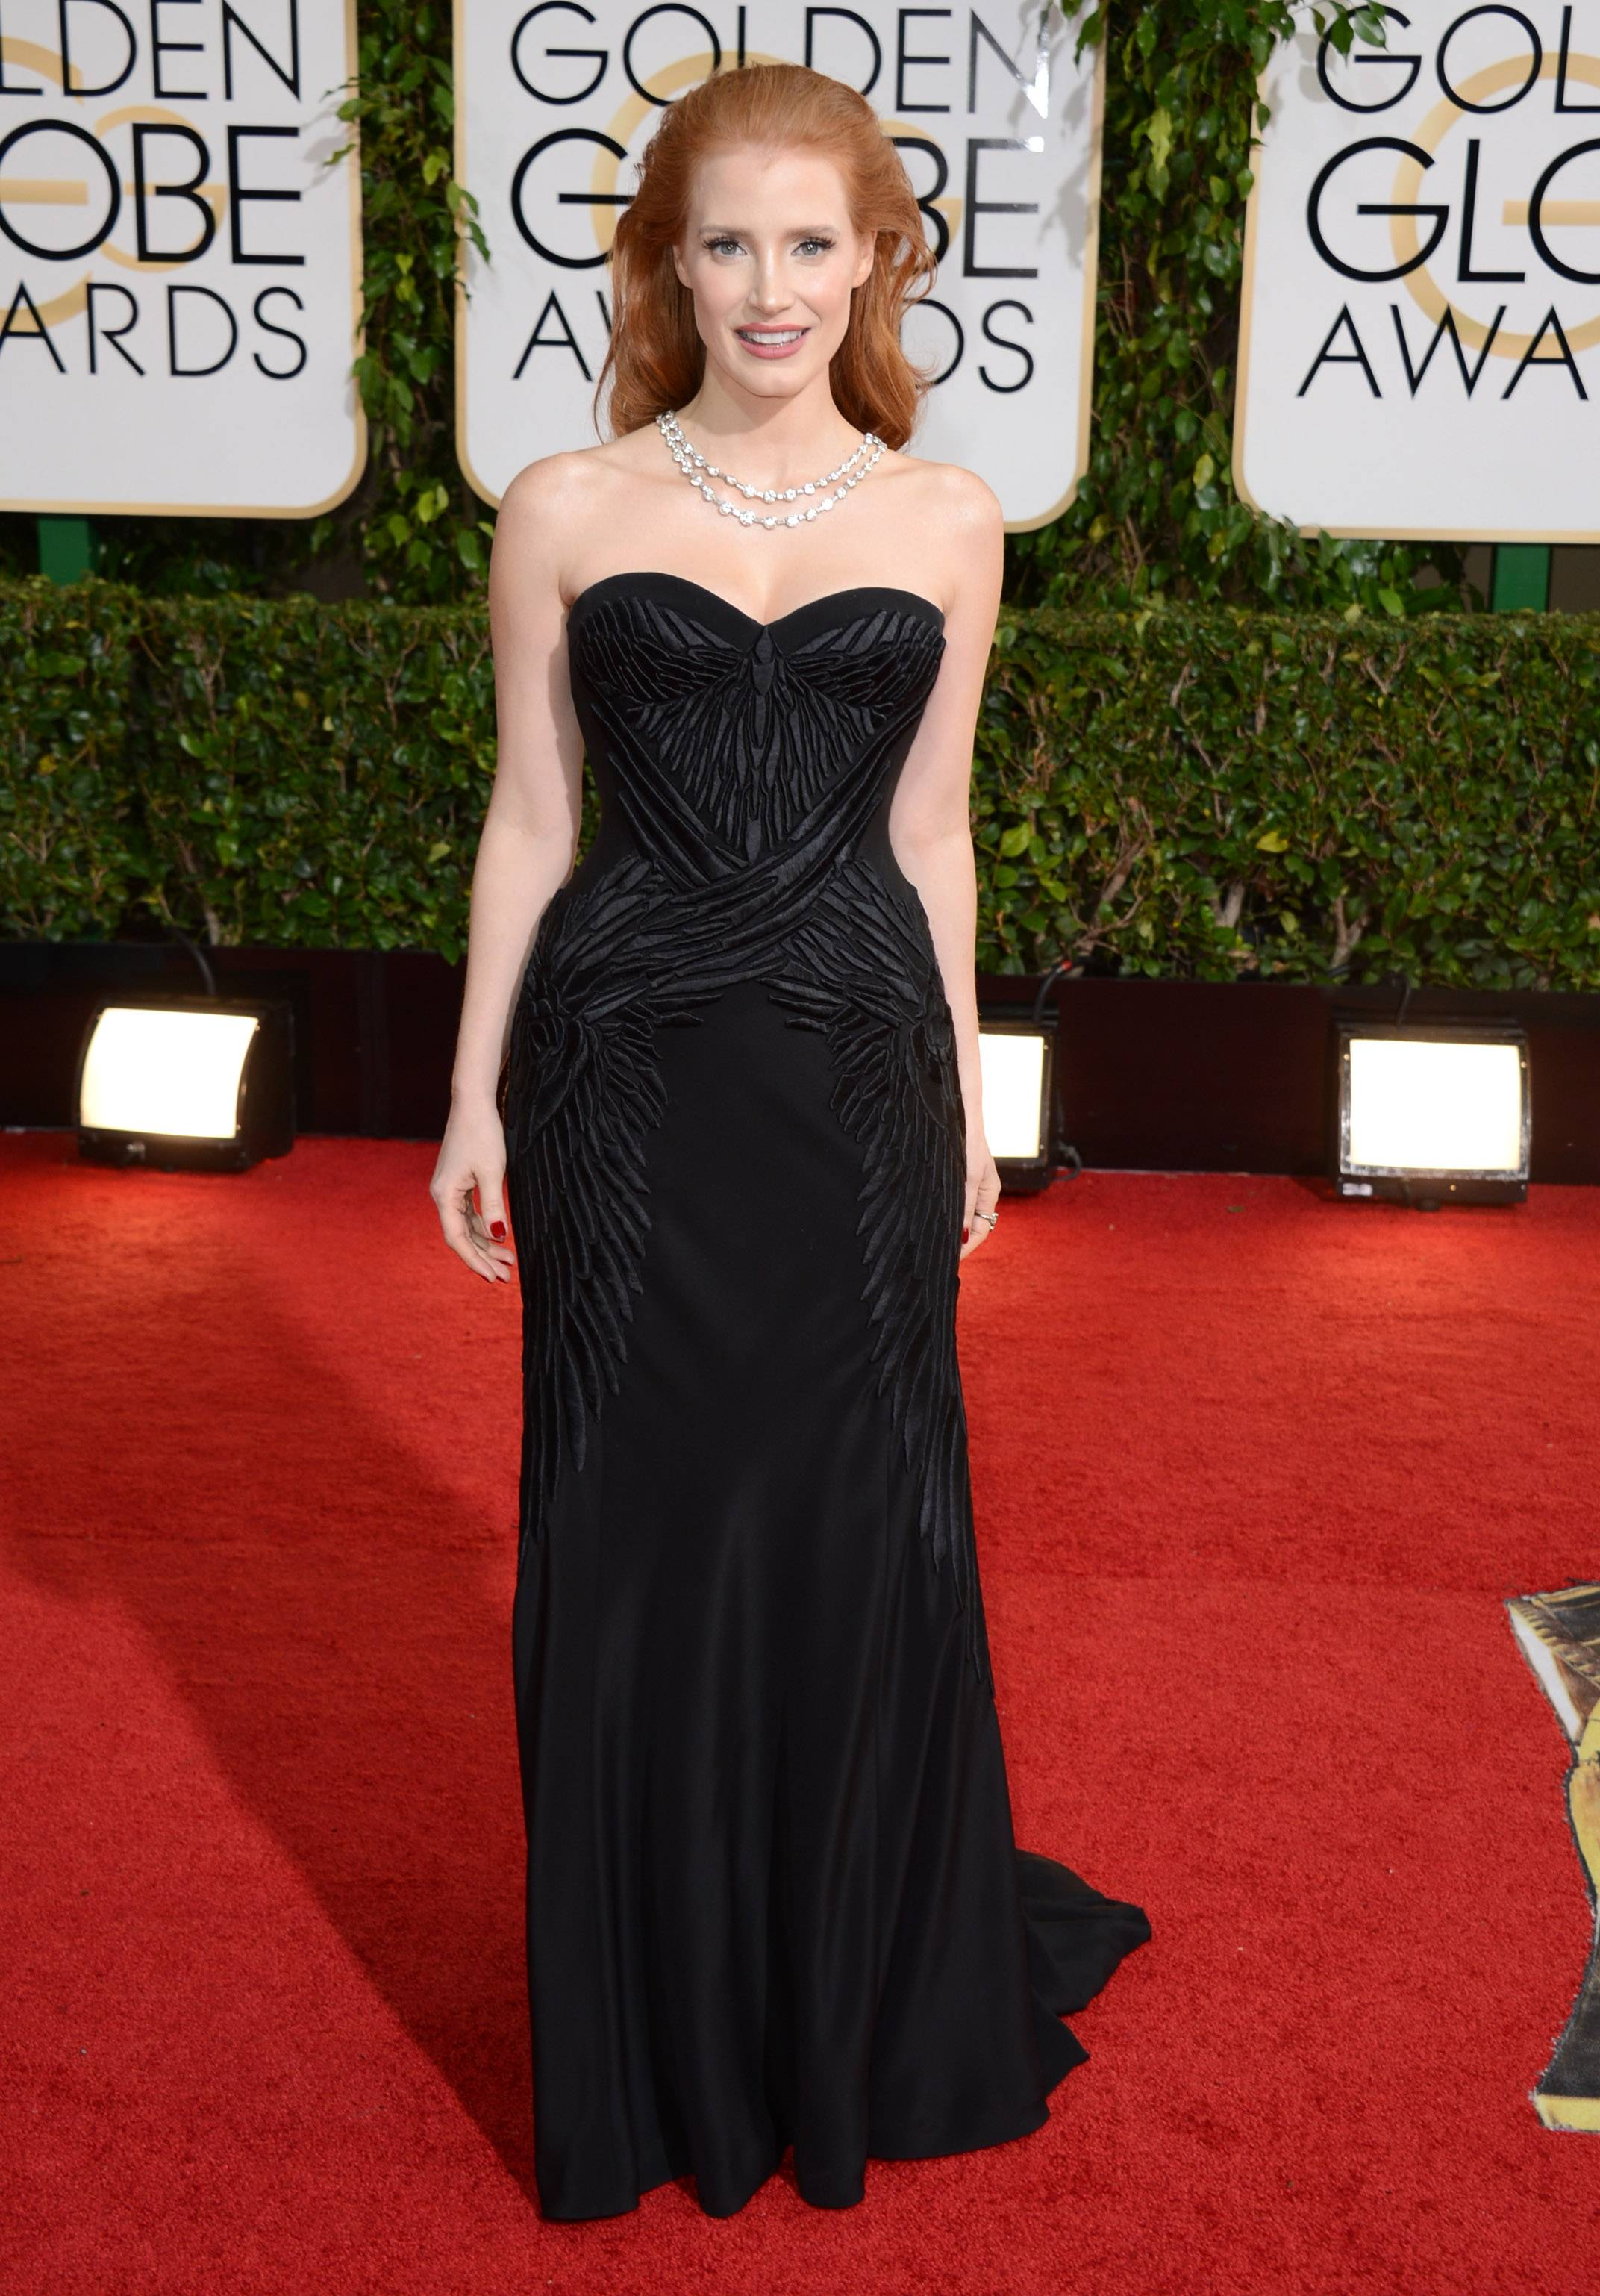 Jessica Chastain dons a classic black gown with a bit of a twist.